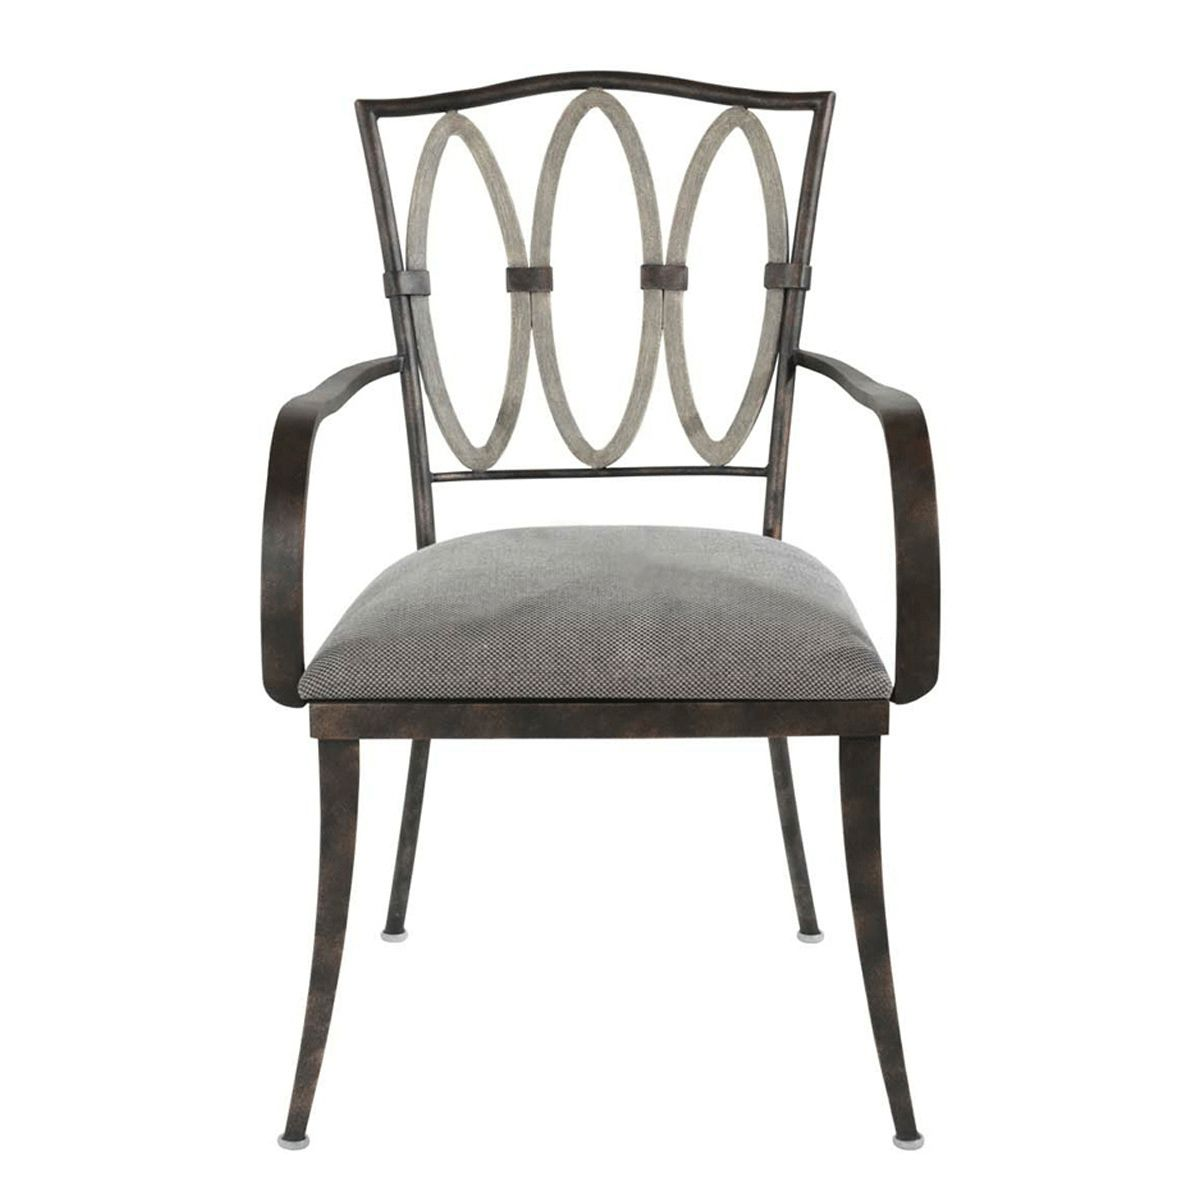 Morgan Dining Chairs with Arms - Set of 2